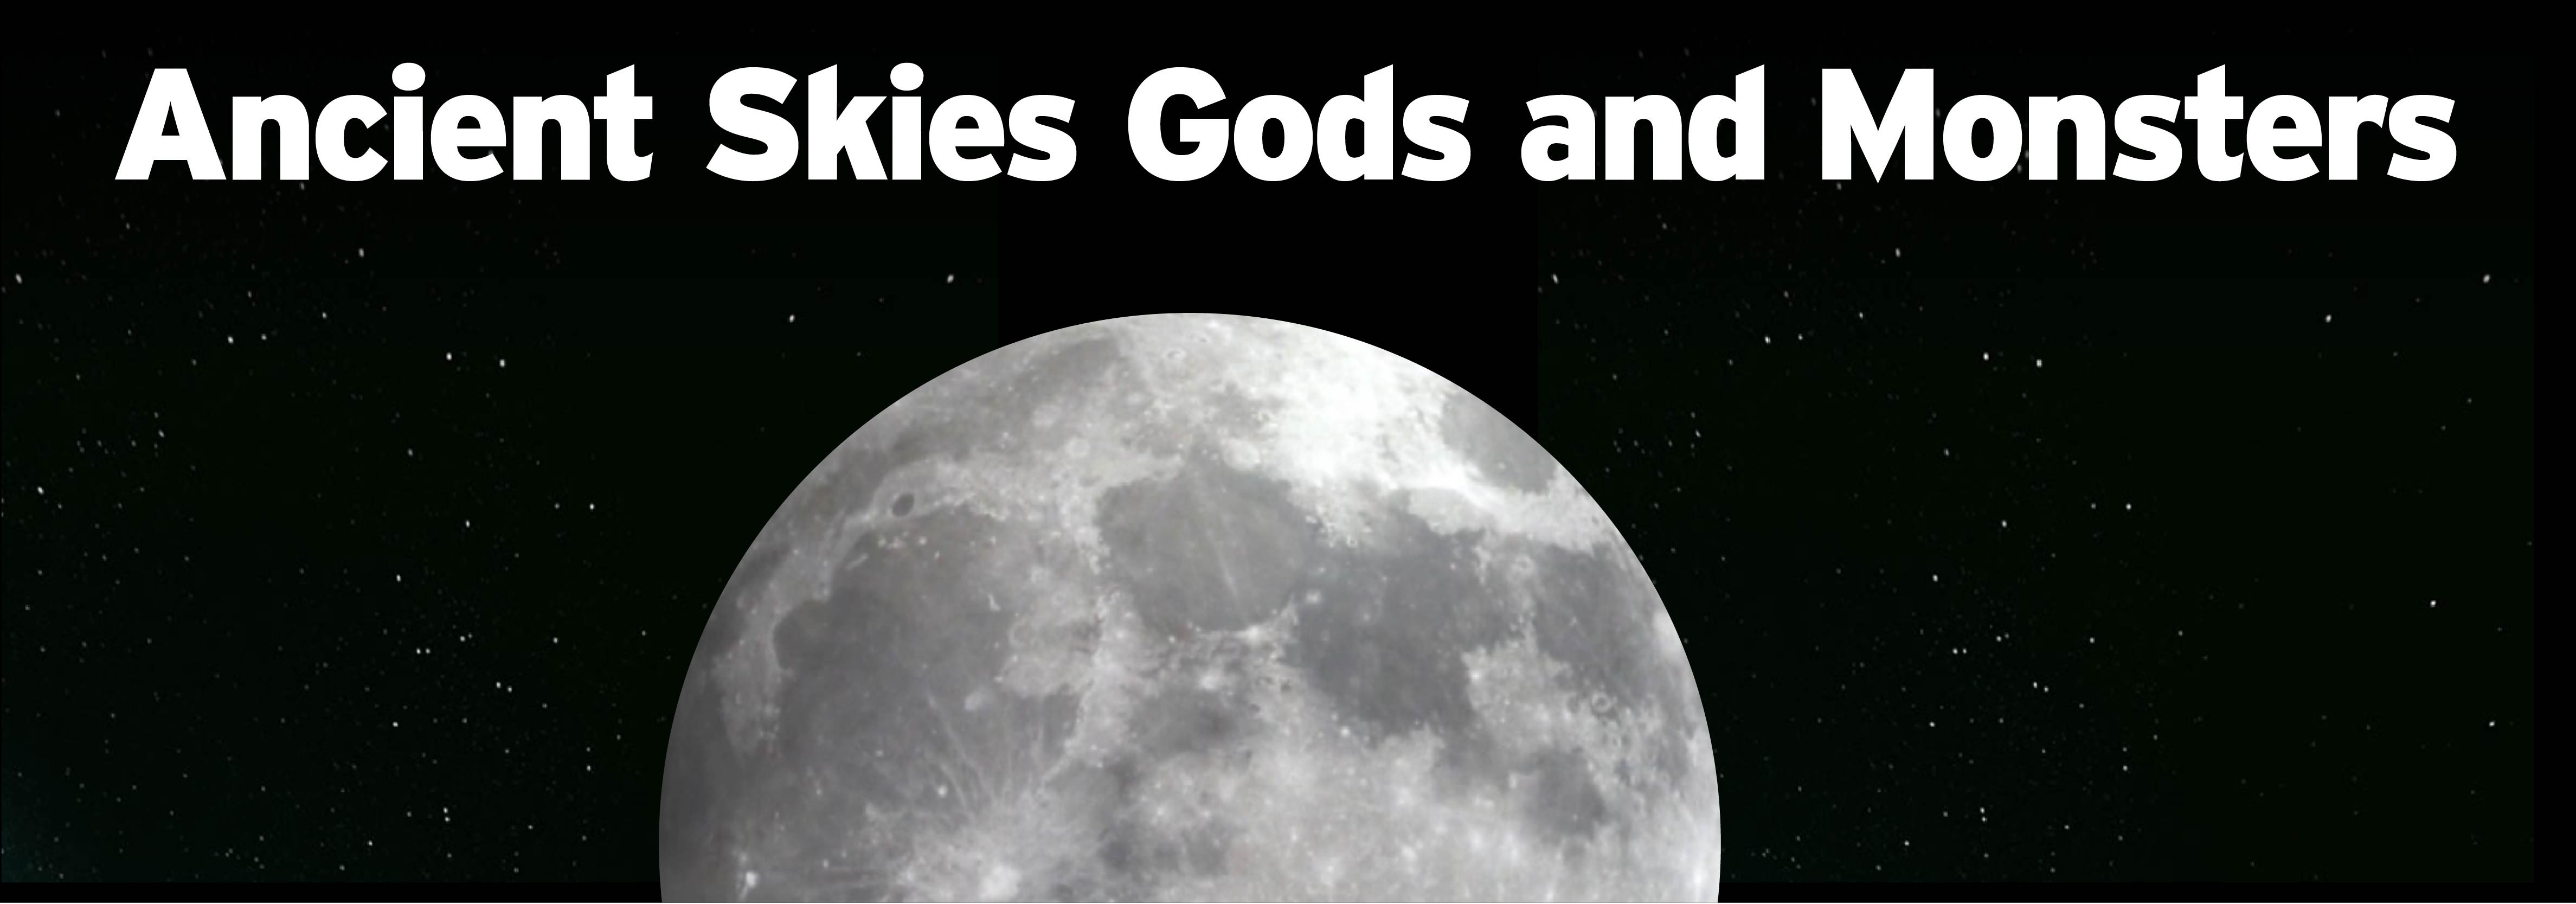 Ancient Skies Gods and Monsters Wednesday, July 24 at 8 p.m. on WCNY-TV